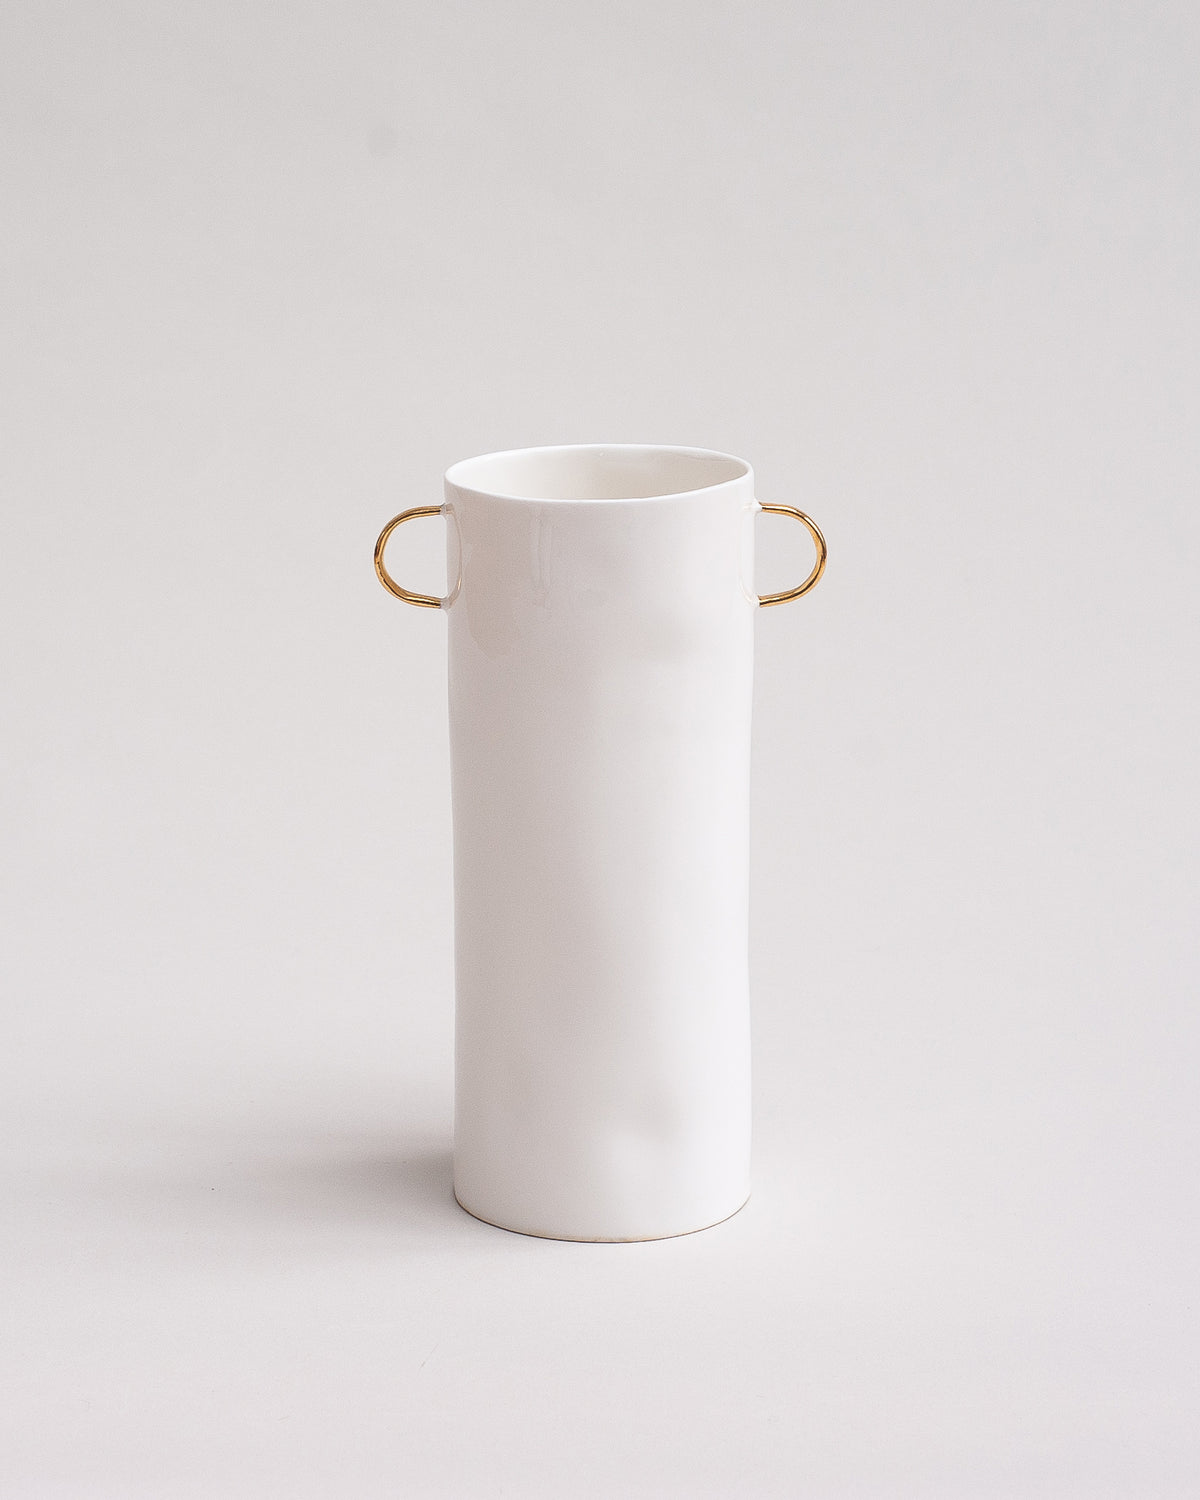 Gold Vase with Handles